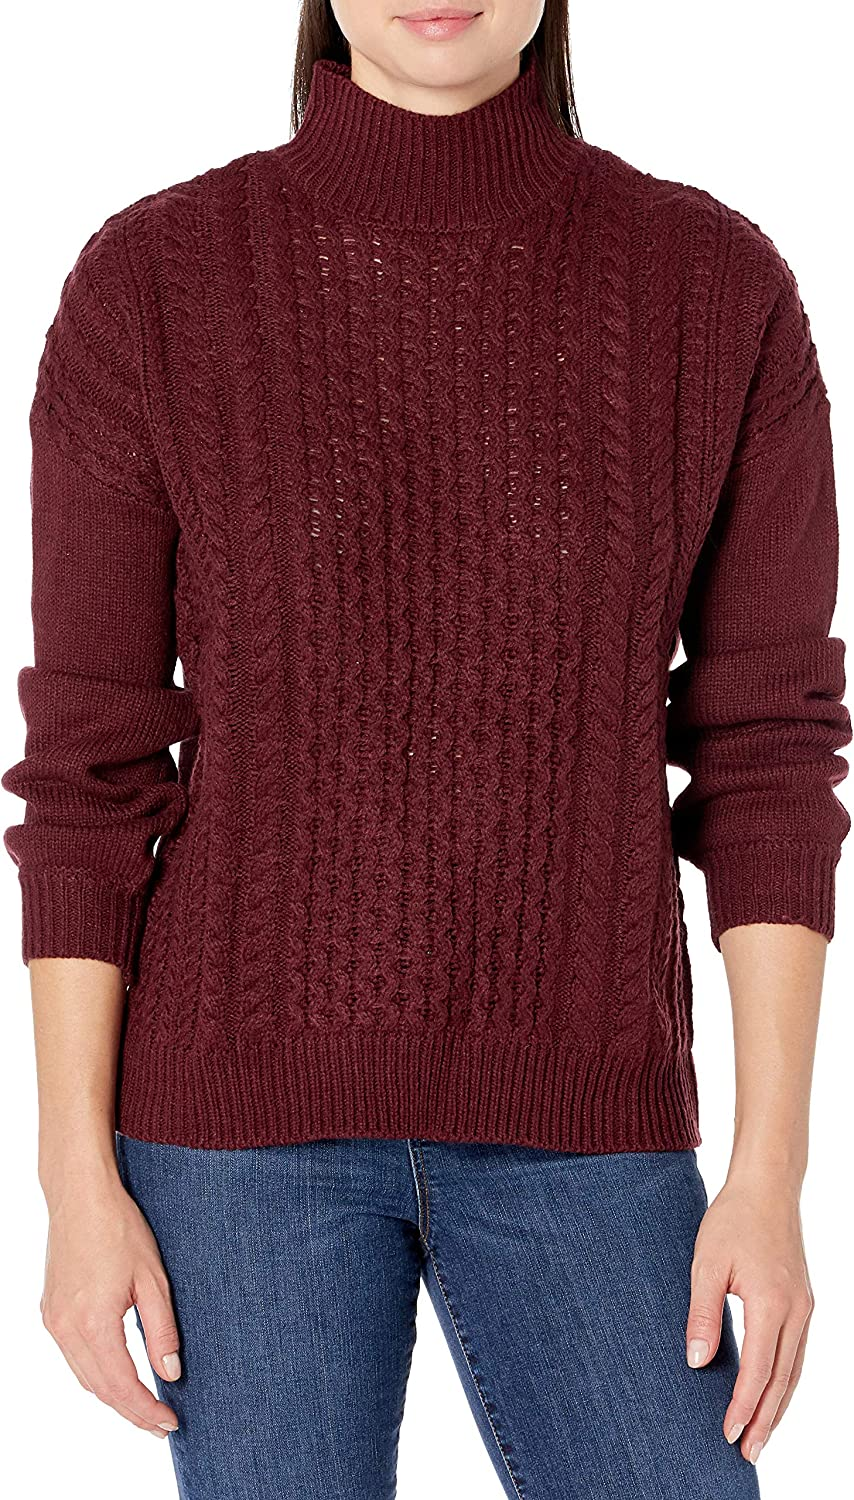 William Rast Women's Mila Cable Pattern Design Pullover Sweater